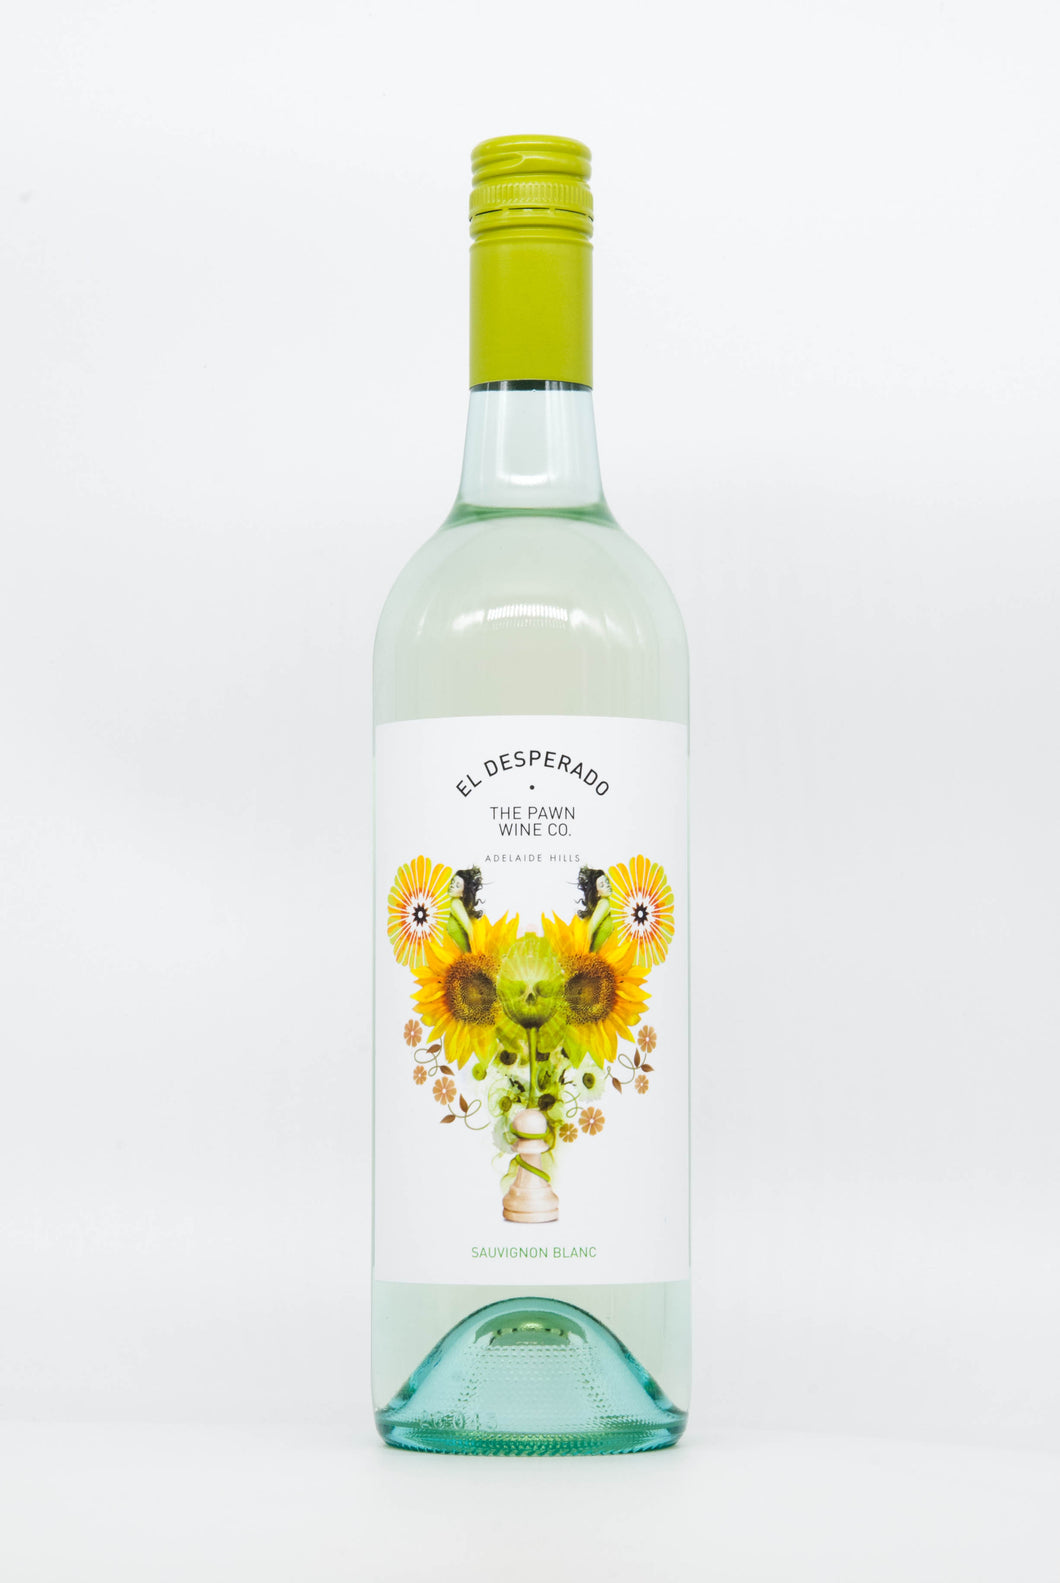 THE PAWN WINE CO. - El Desperado Sauvignon Blanc